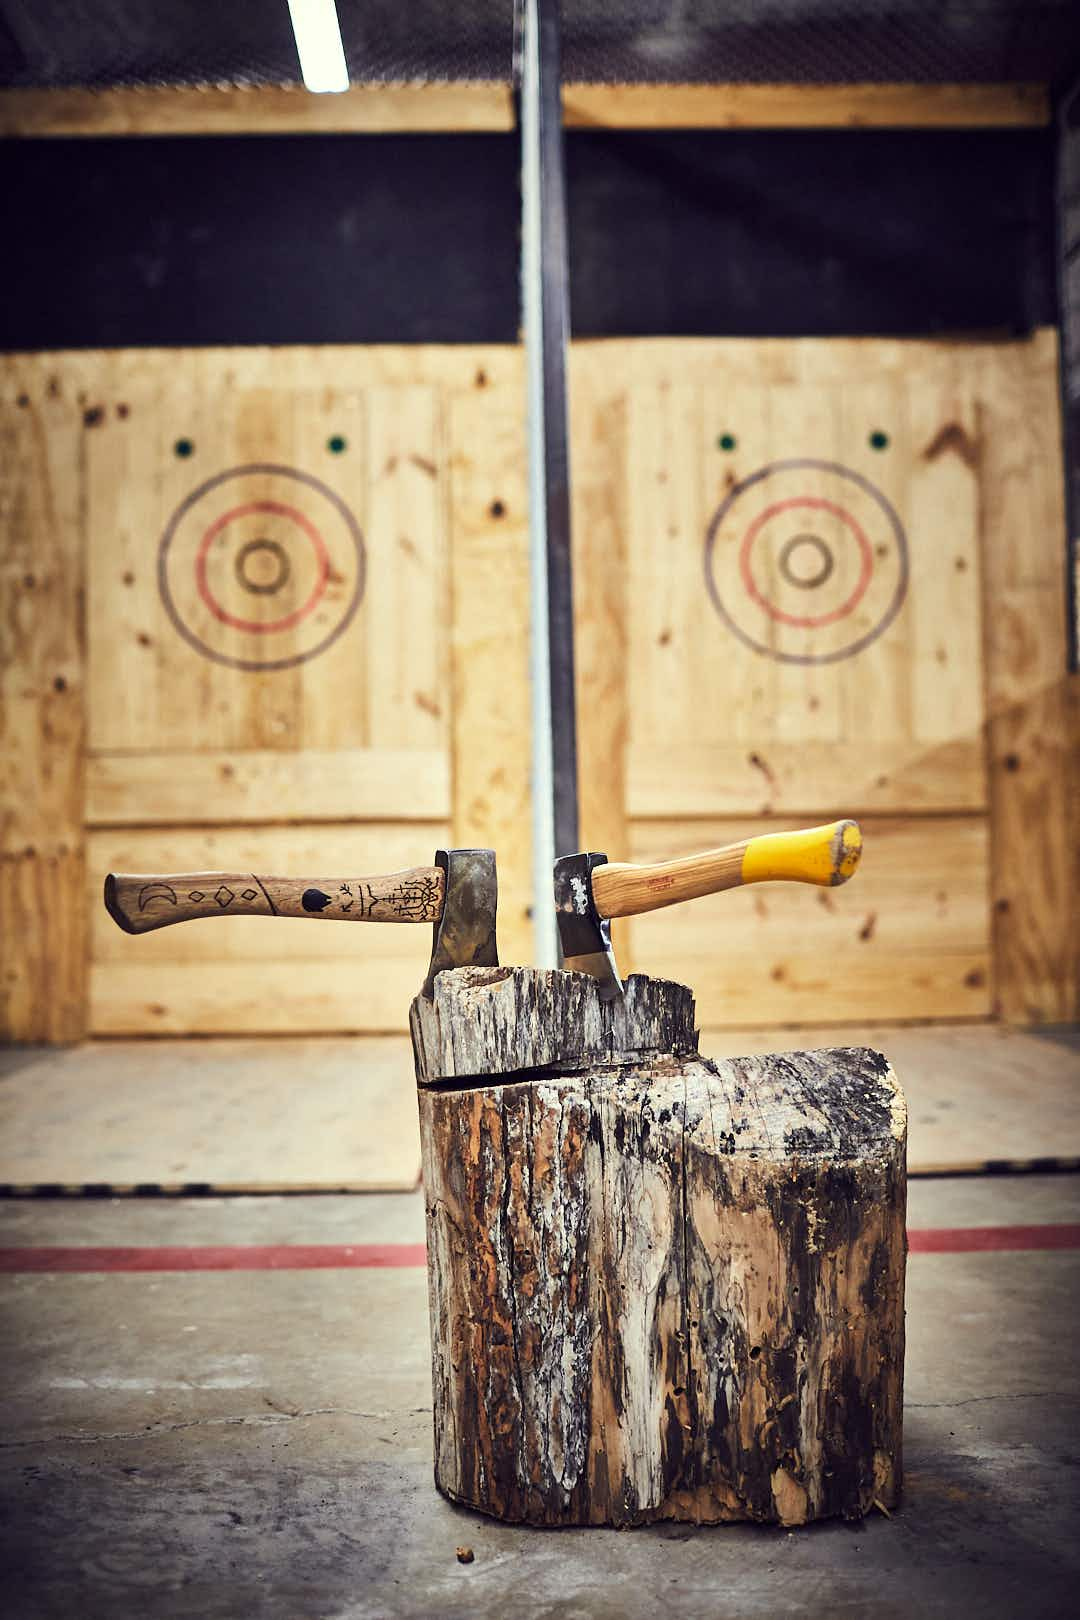 Fancy trying competitive axe throwing?  Fast becoming America's fun new pastime